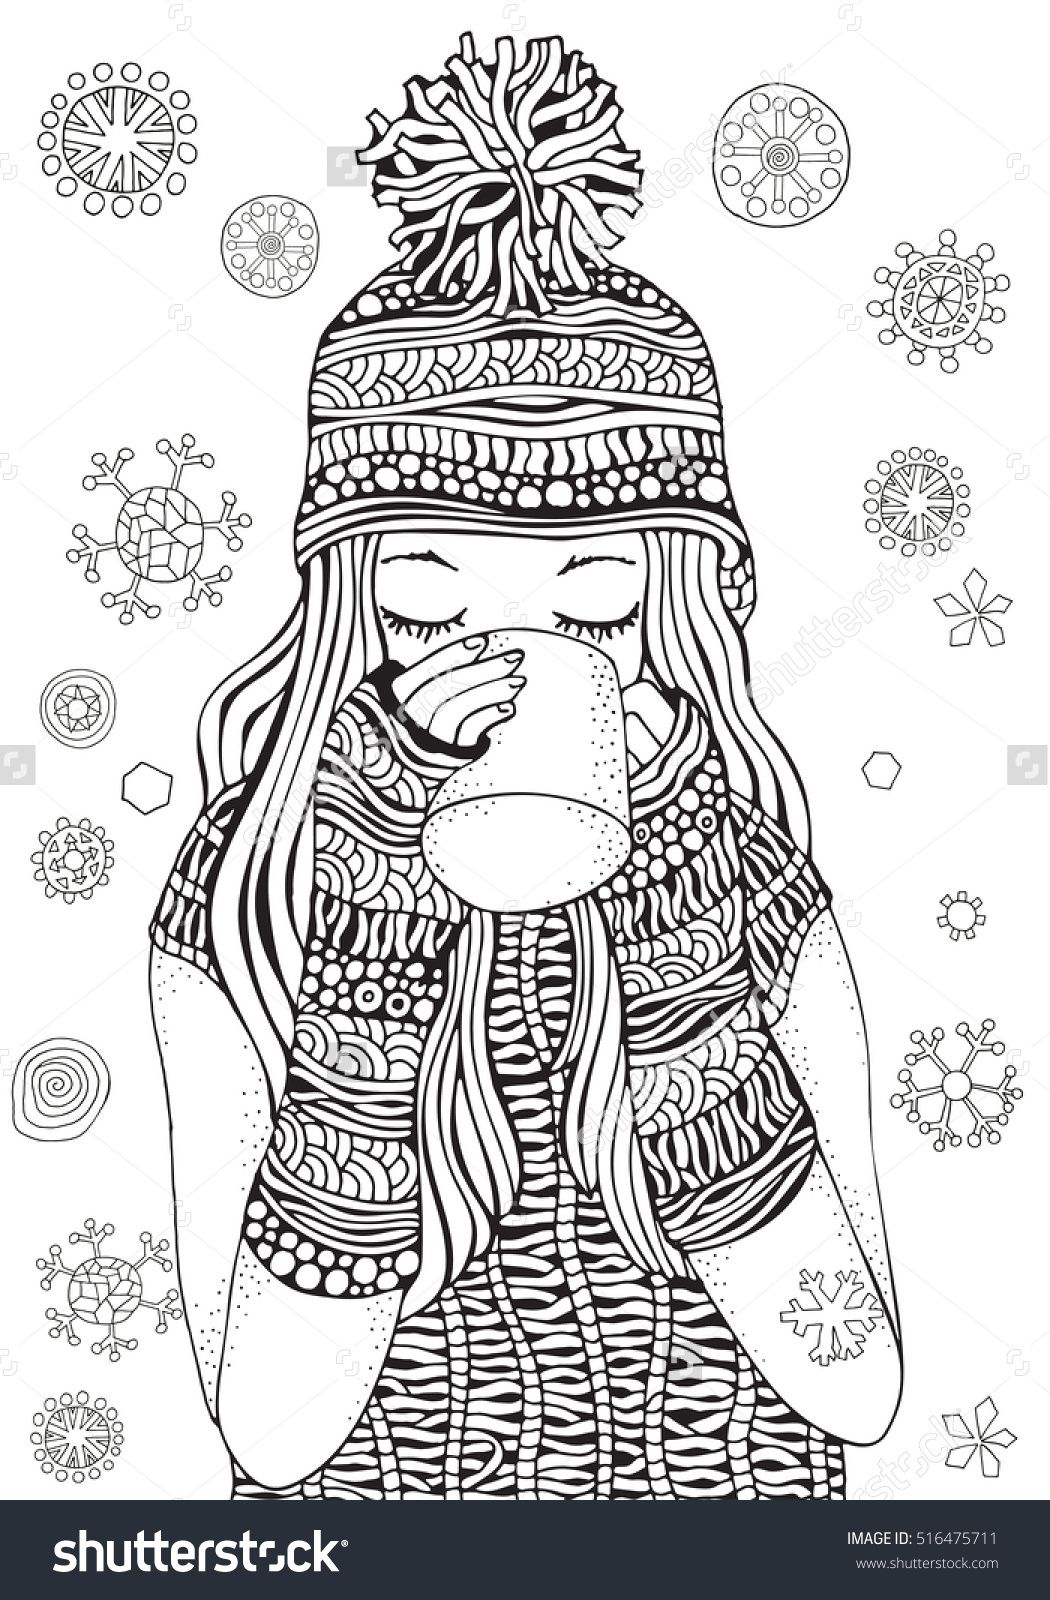 winter girl and gifts winter snowflakes adult coloring book page hand drawn vector - Coloring Books For Girls